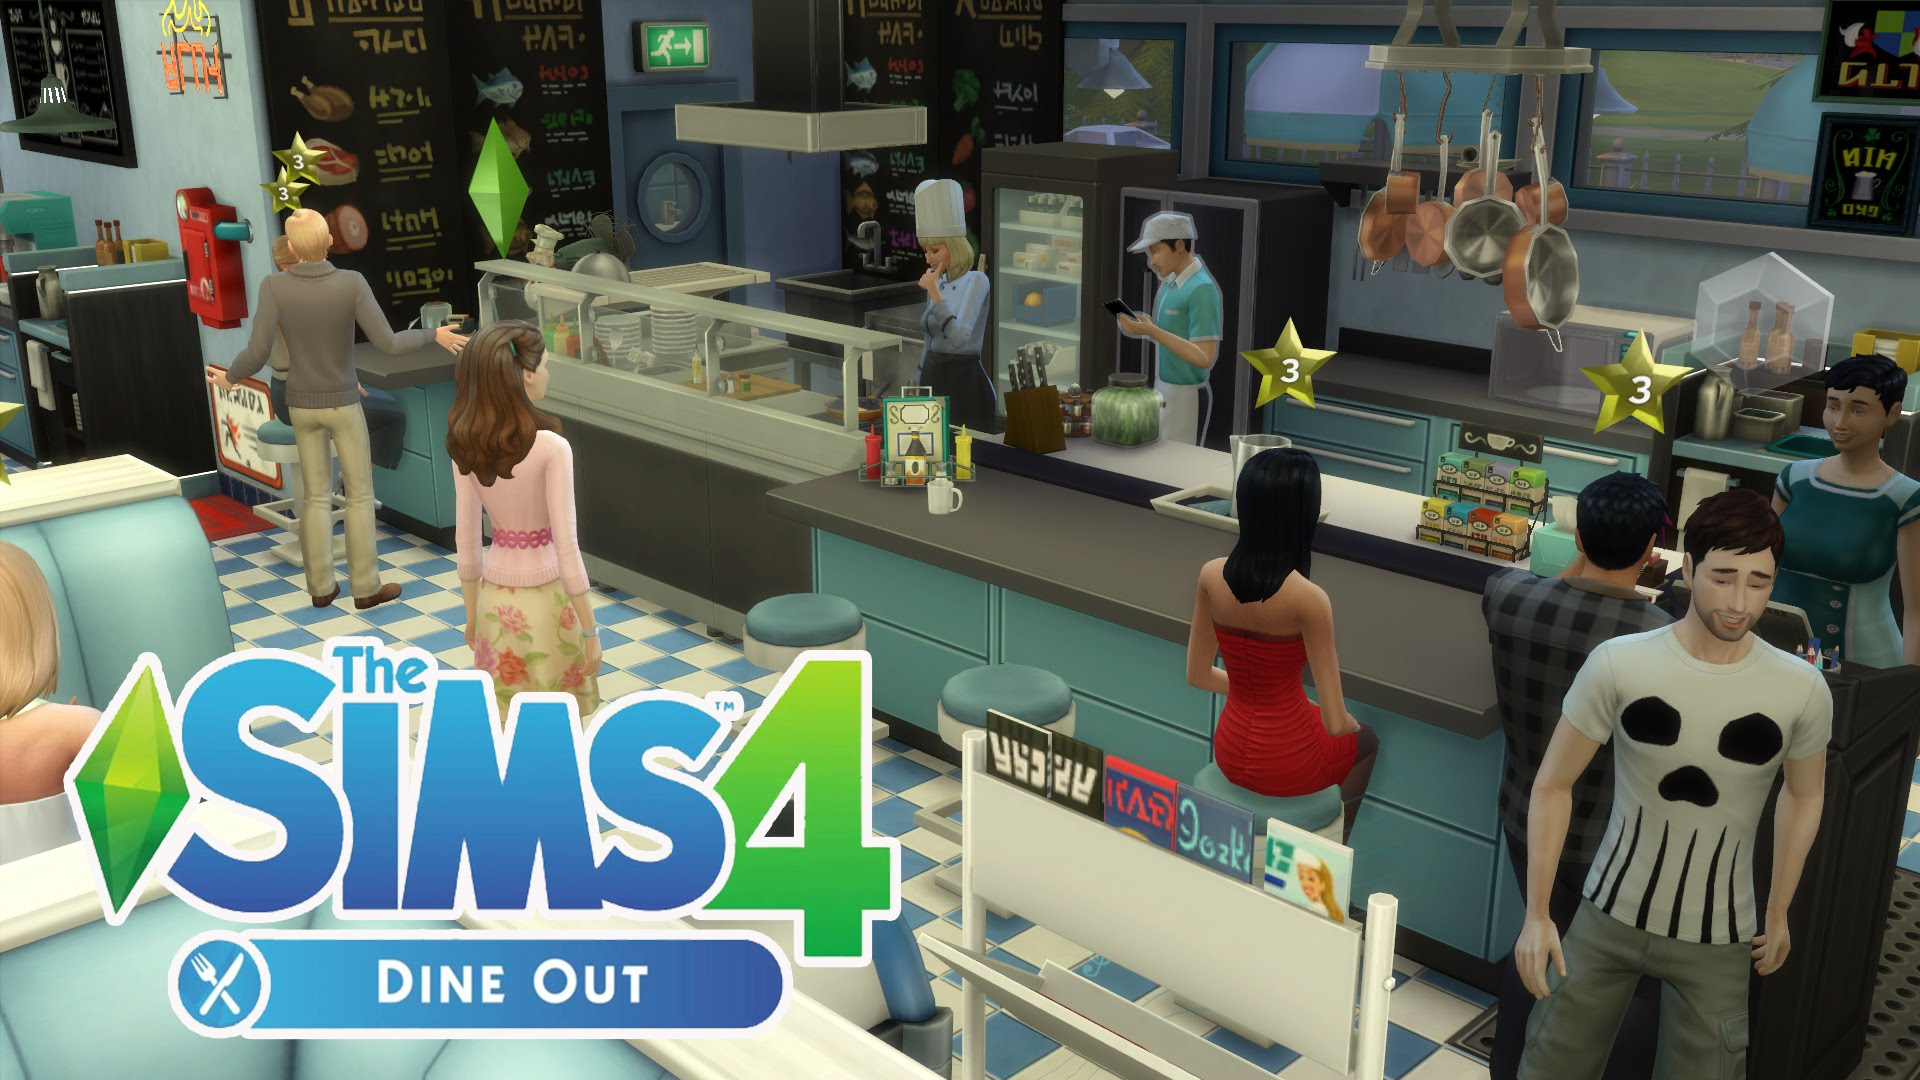 Sims 4 Getting expensive with DLC's